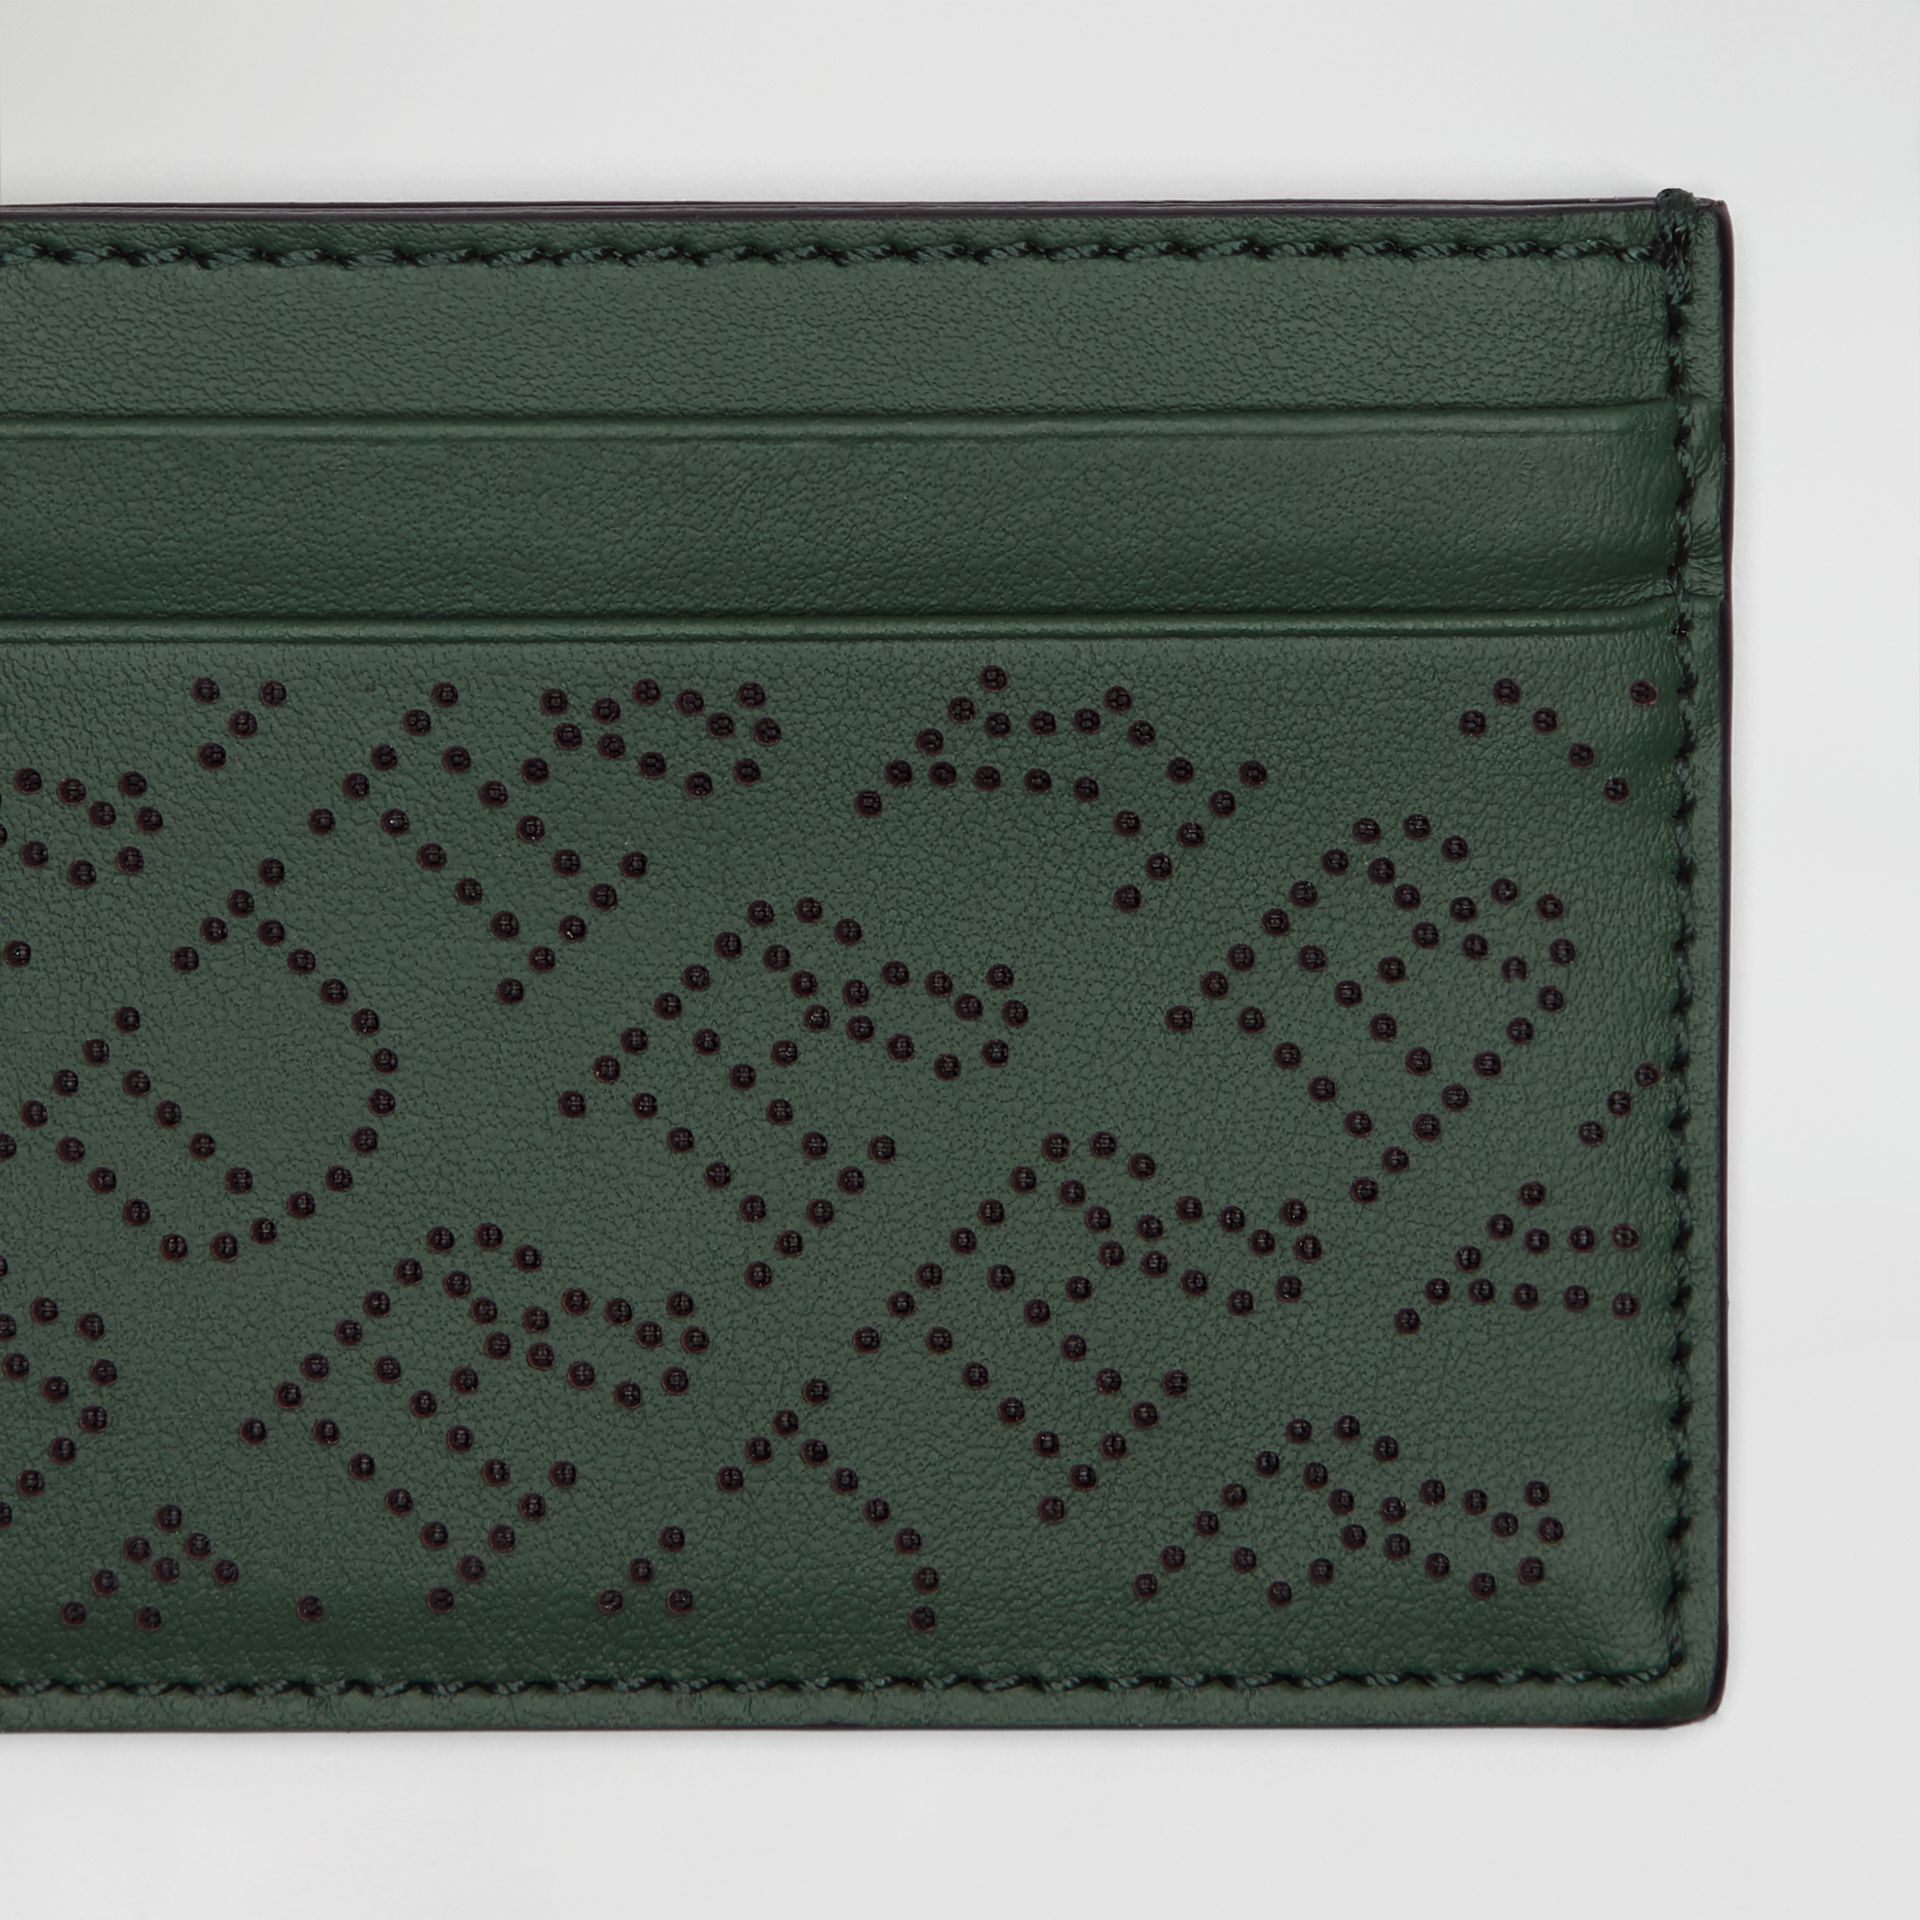 Perforated Logo Leather Card Case in Vintage Green - Women | Burberry - gallery image 1